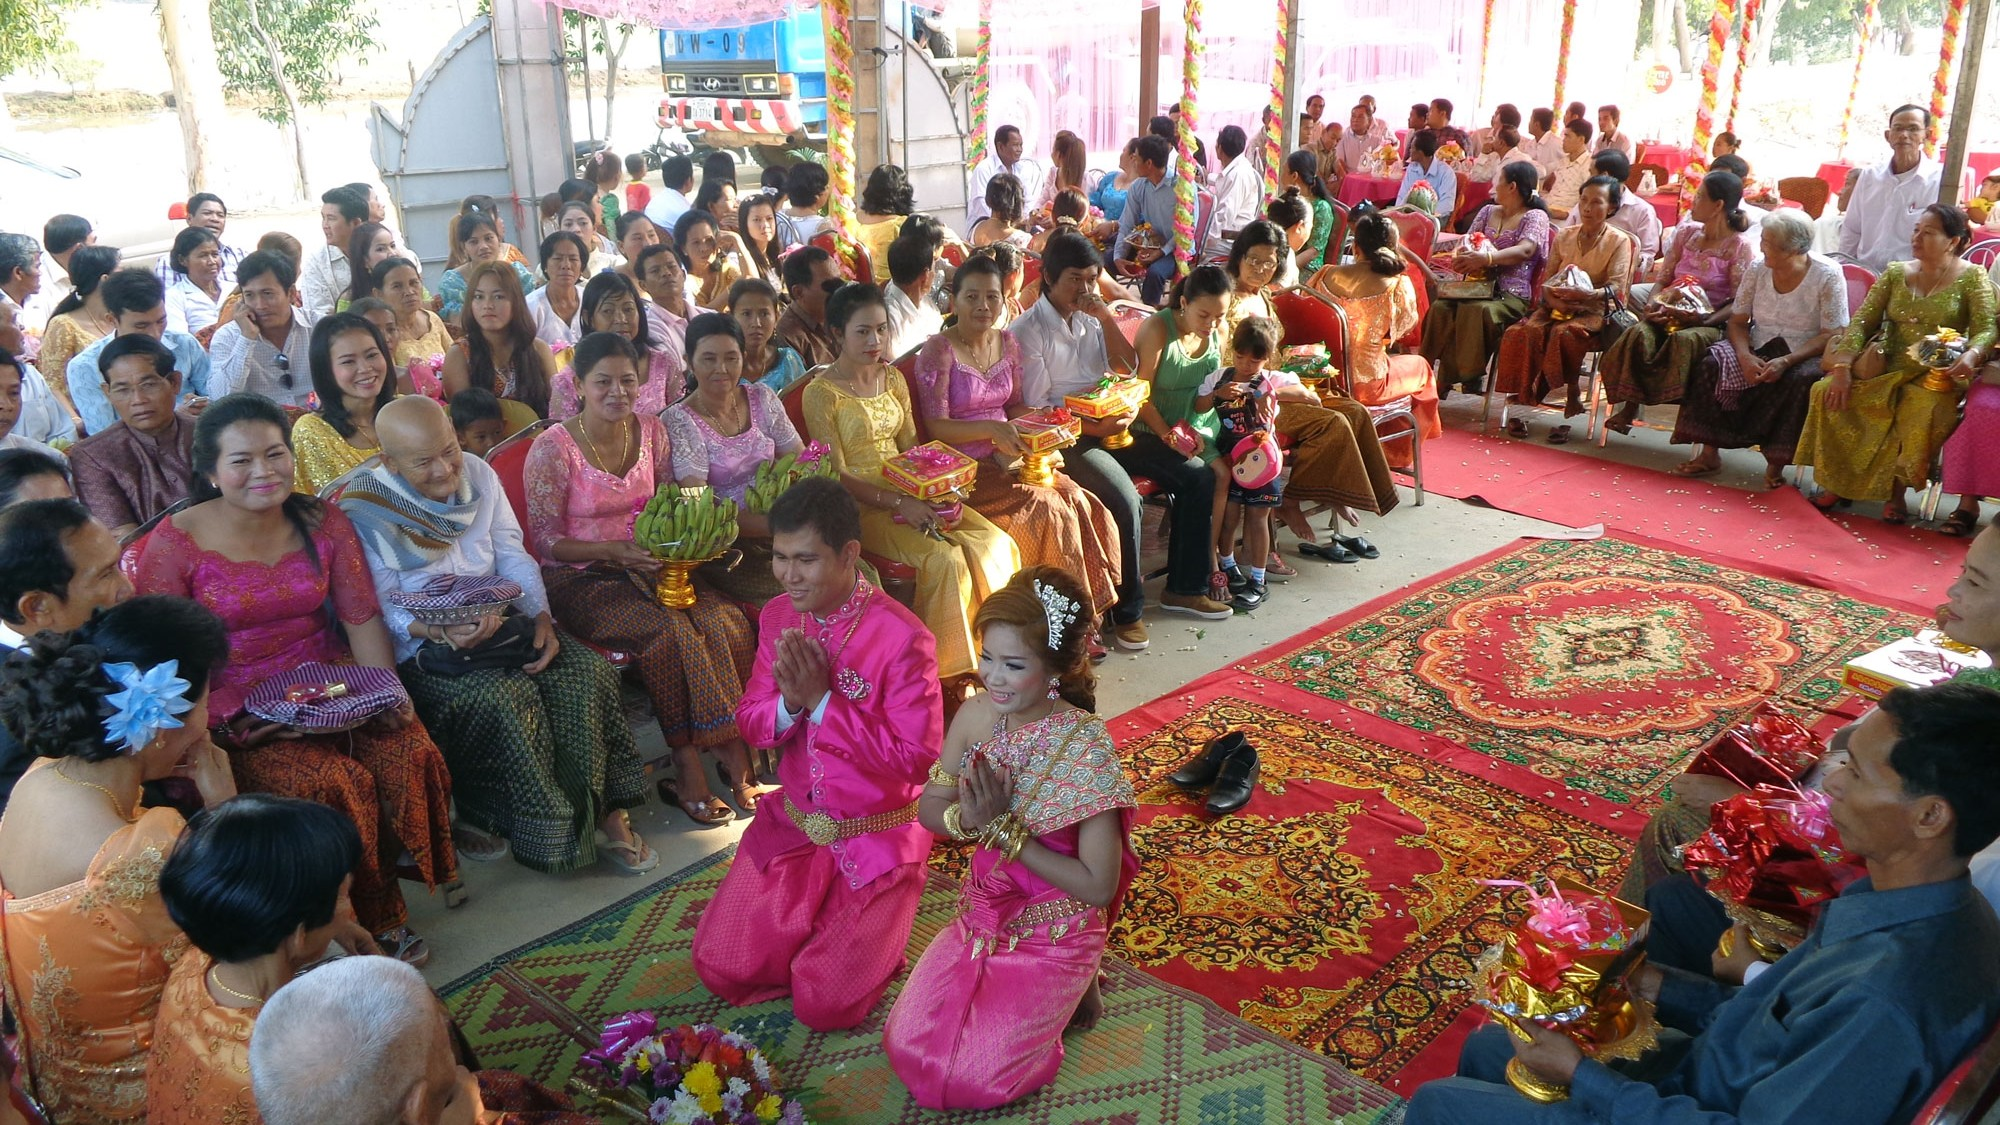 khmer-wedding-cambodia7